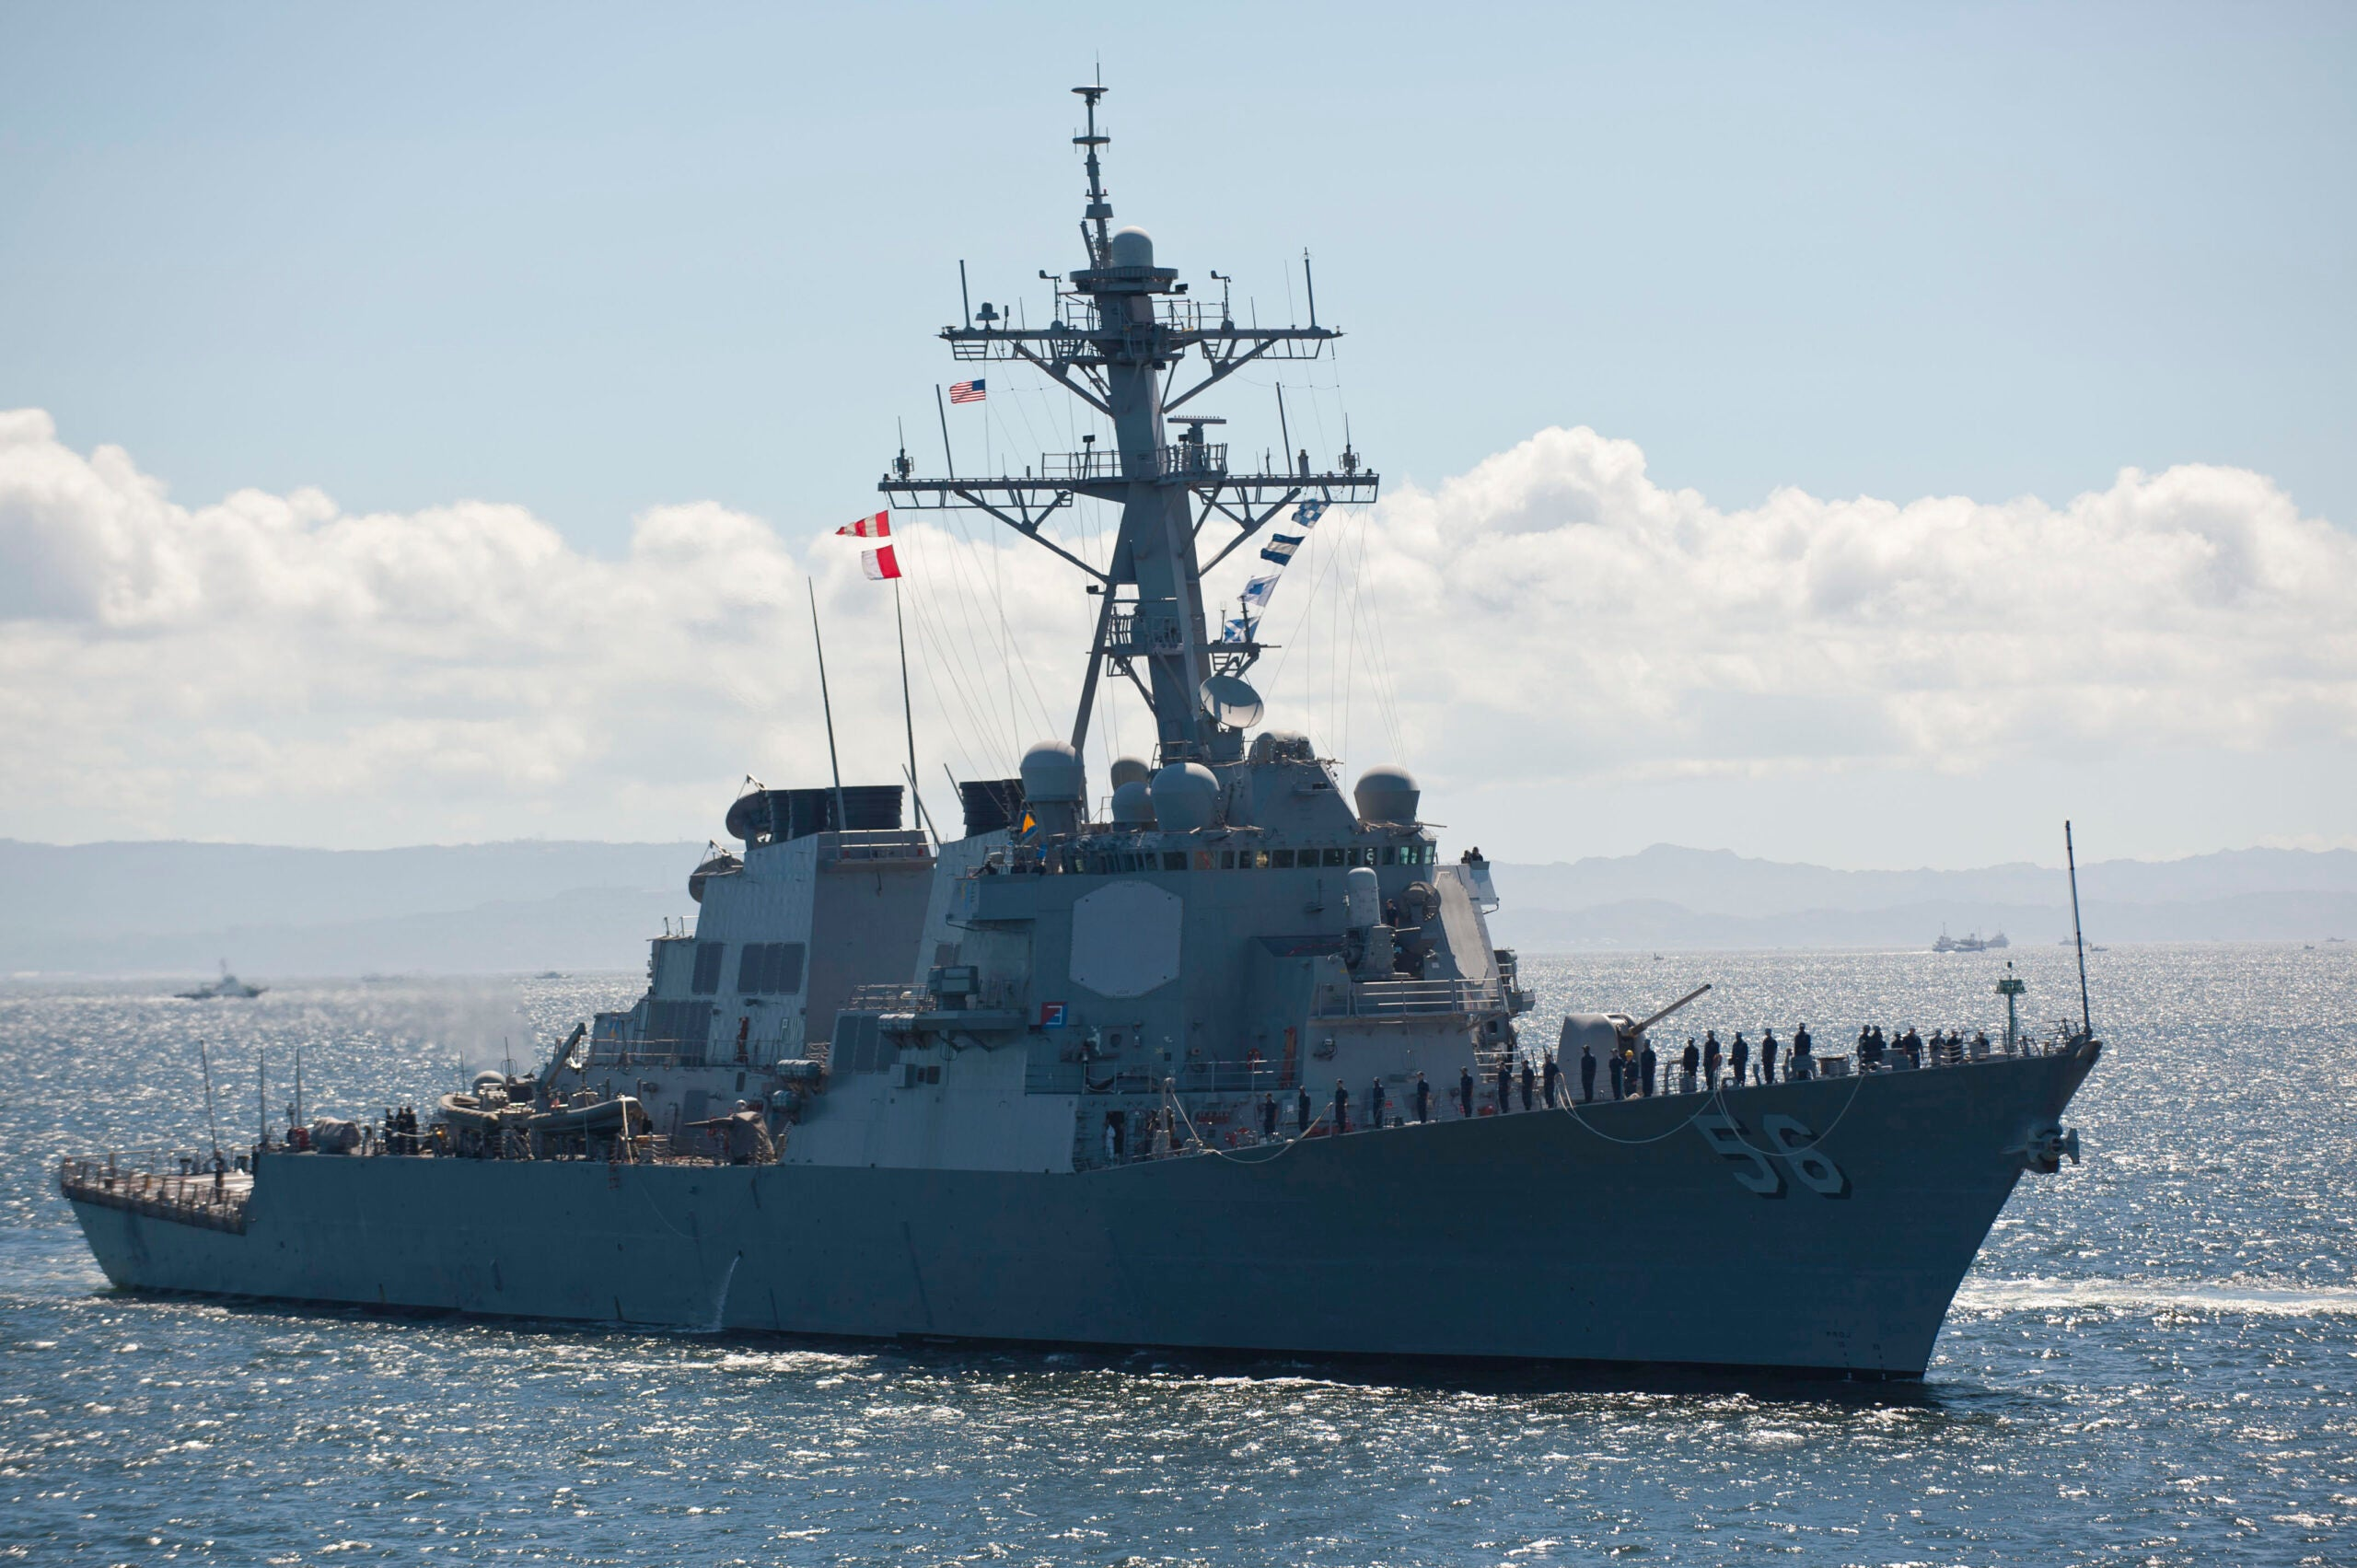 Russia claims it chased off a US Navy destroyer after threatening to ram it